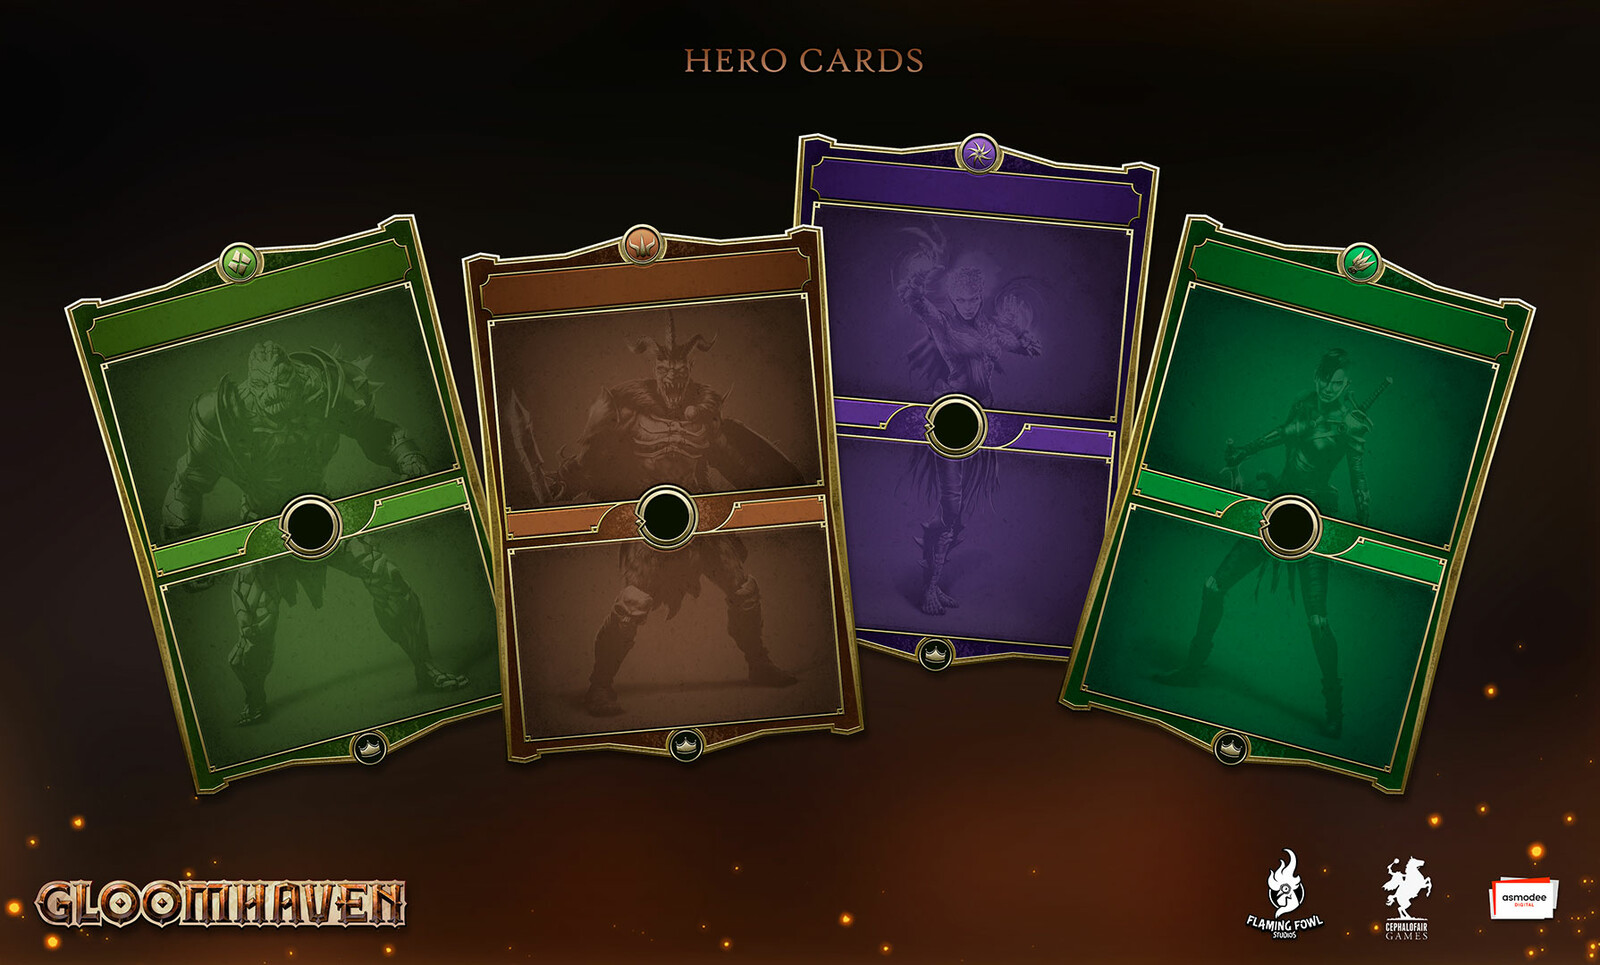 Each Character has a different colour card theme.